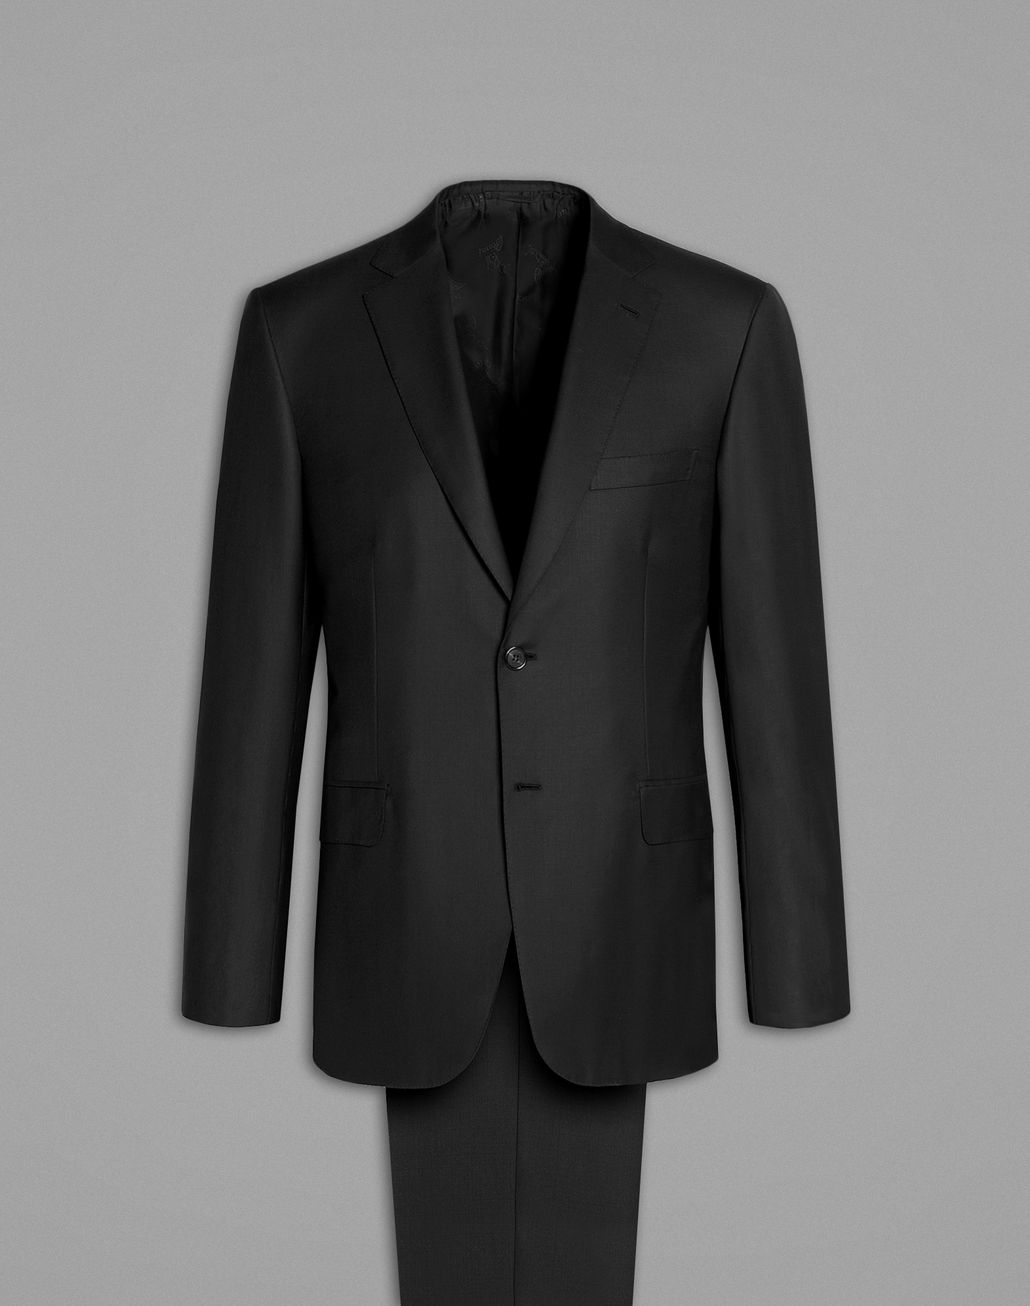 BRIONI Costume Brunico Essential noir Suits & Jackets Homme f